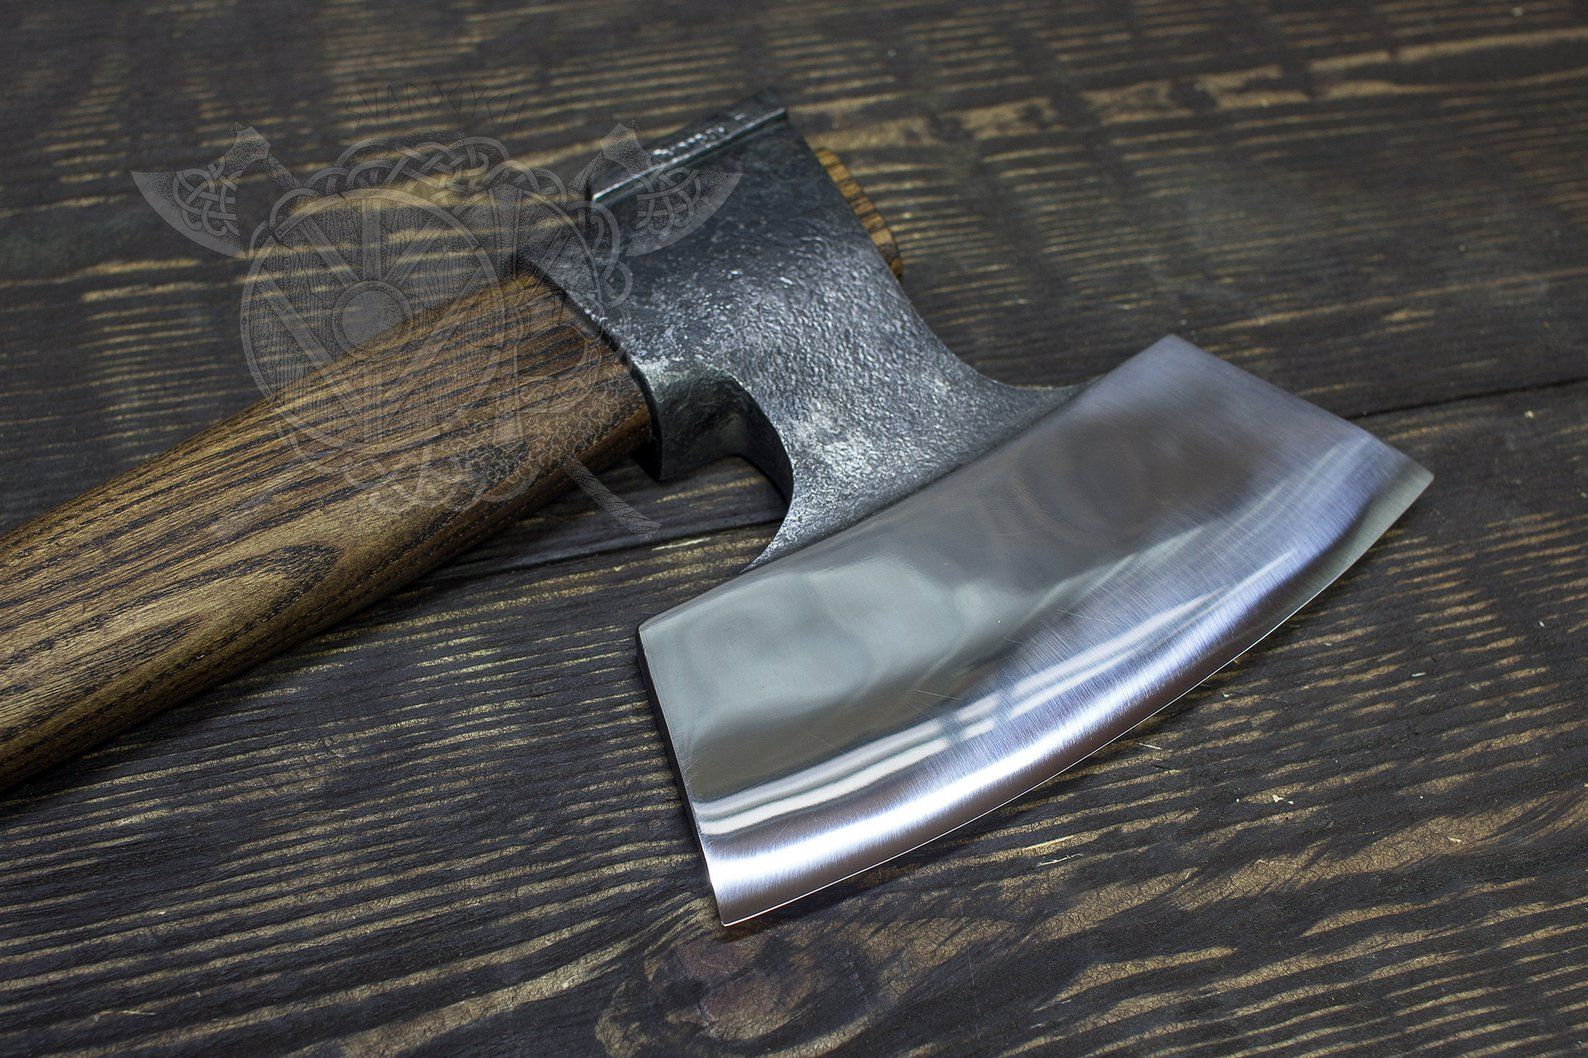 Finnish One Beveled Axe Carpenter Tool Hewing Logs Hand Tool Carpenter Hatchet Axe Hand Tools Carpenter Tools